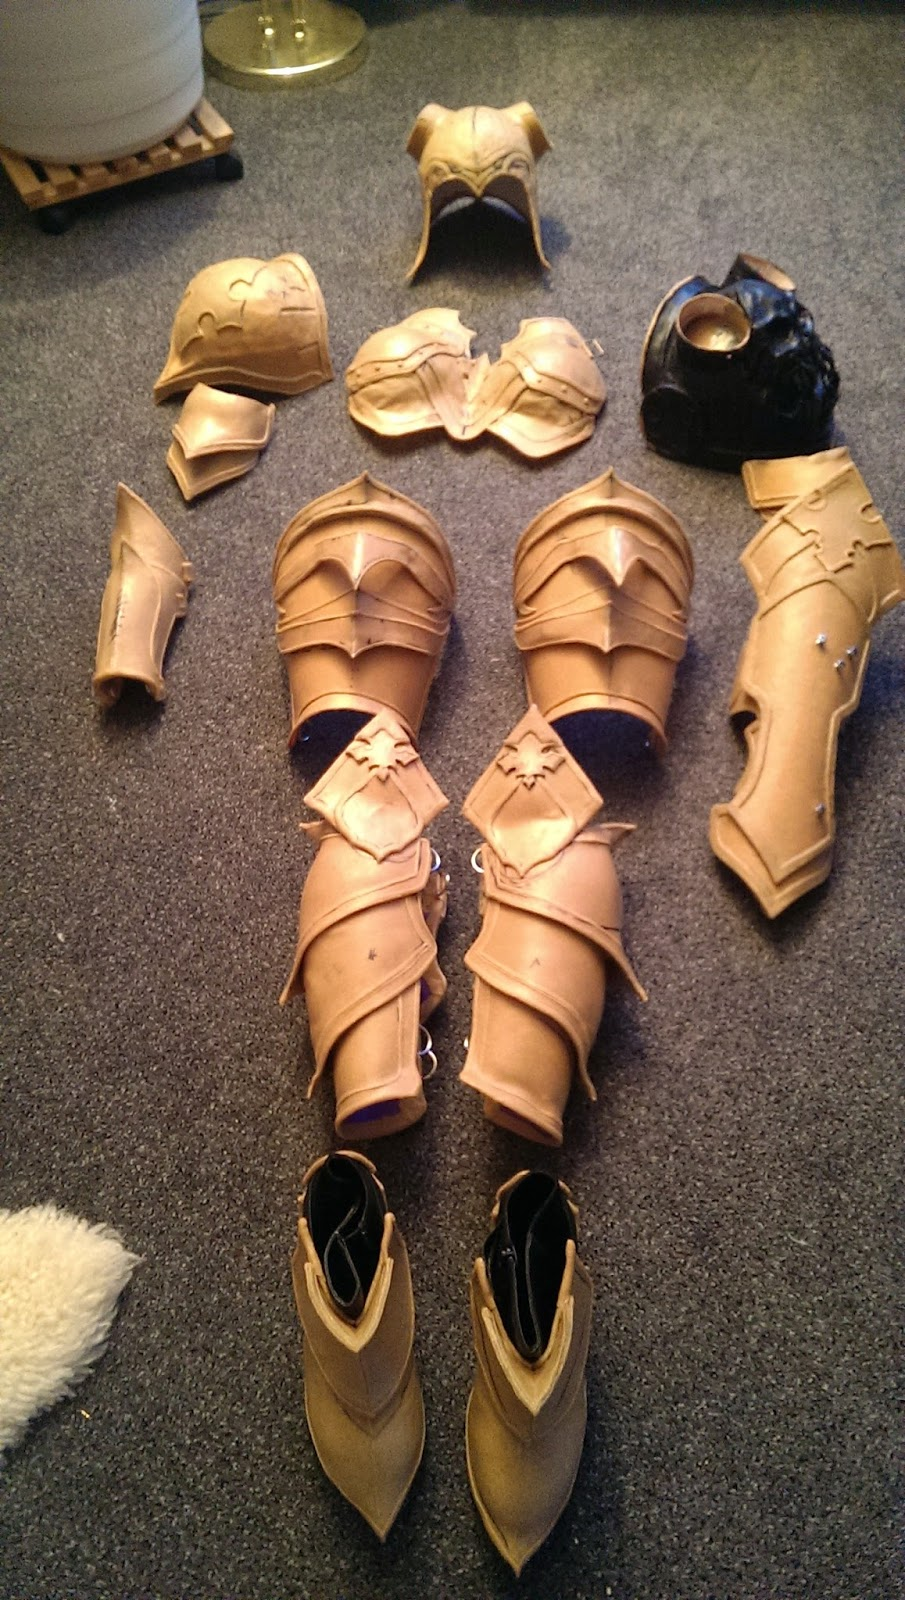 Demon Hunter Leg Armor Worbla Thermoplastics